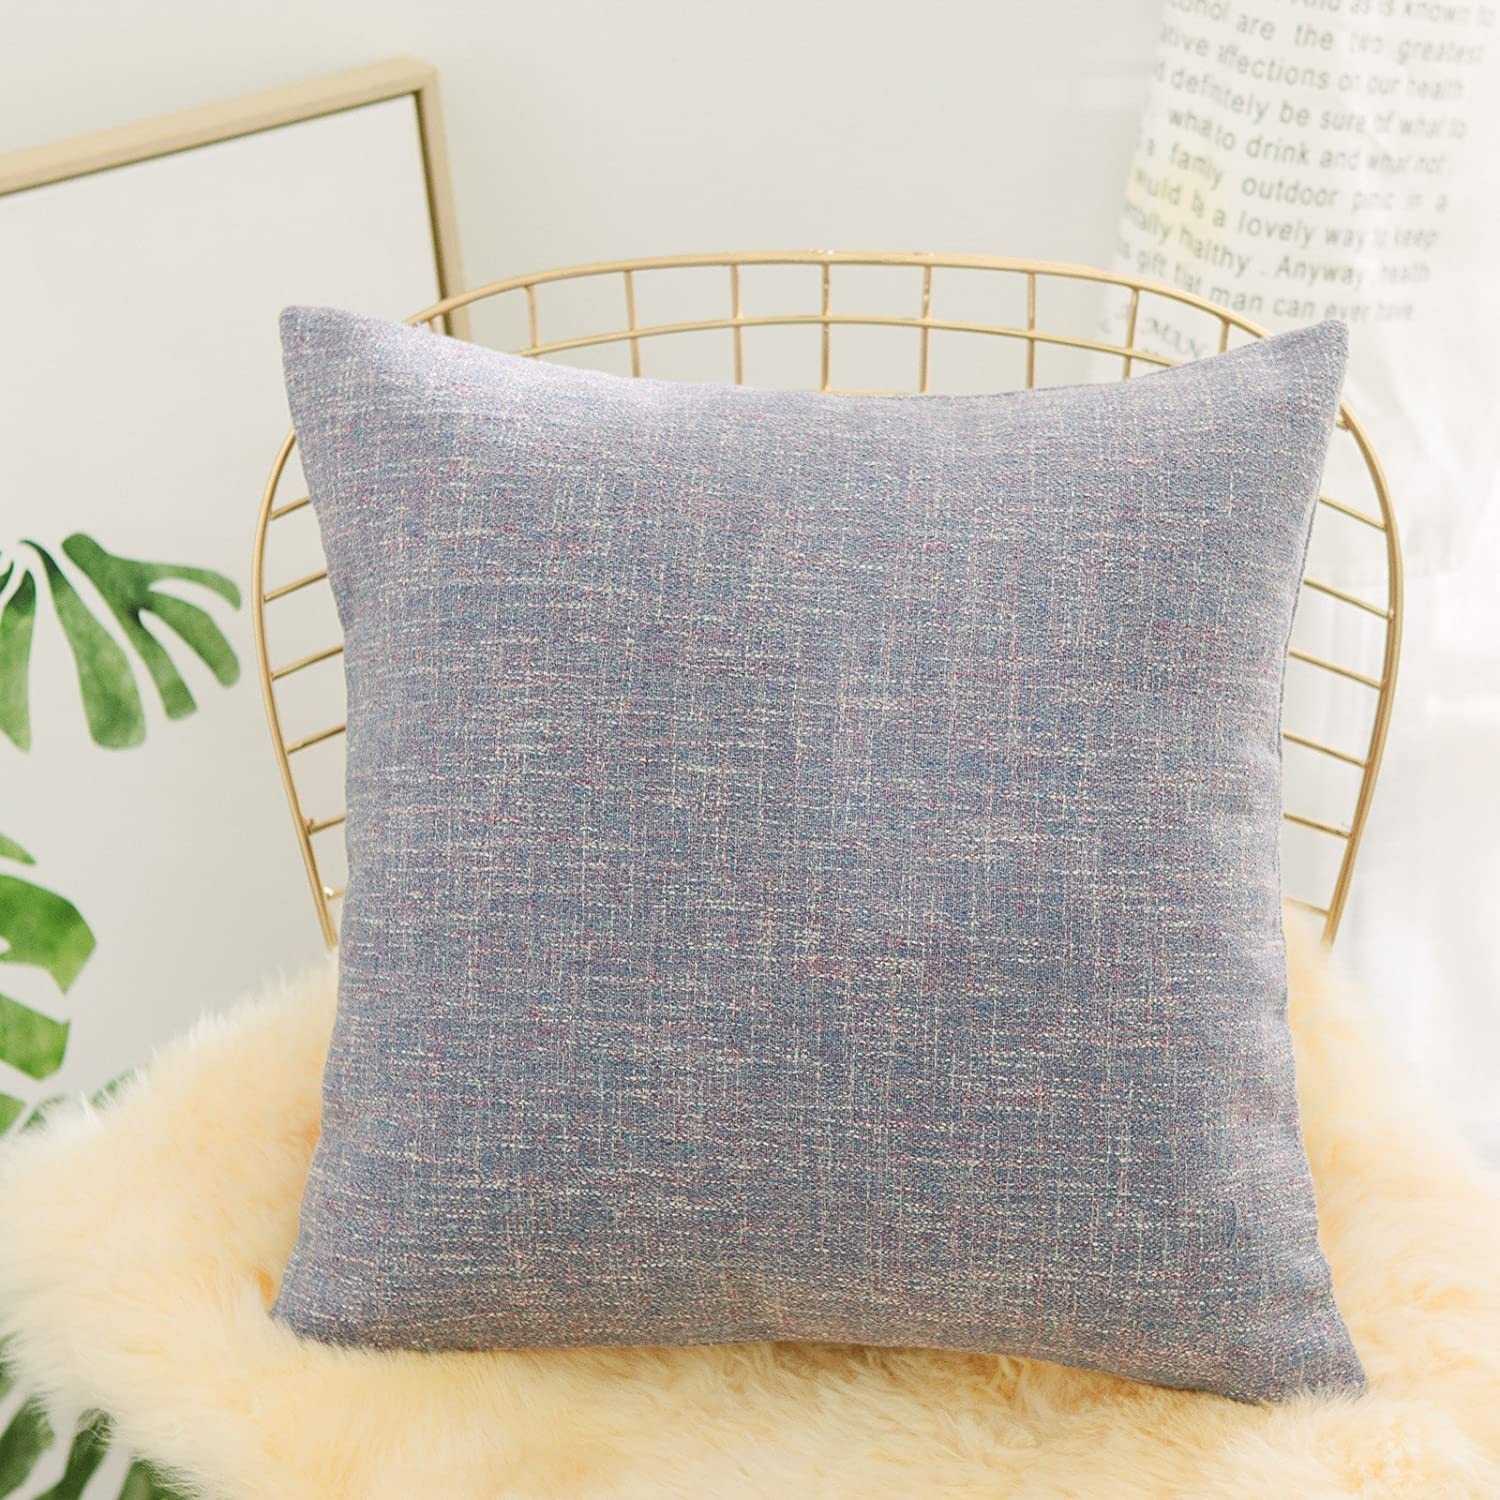 Home Brilliant Euro Sham Linen Textured Striped Pillowcase Large Throw Pillow Cover for Floor, 26x26 inch(66x66cm), Lavender Lilac